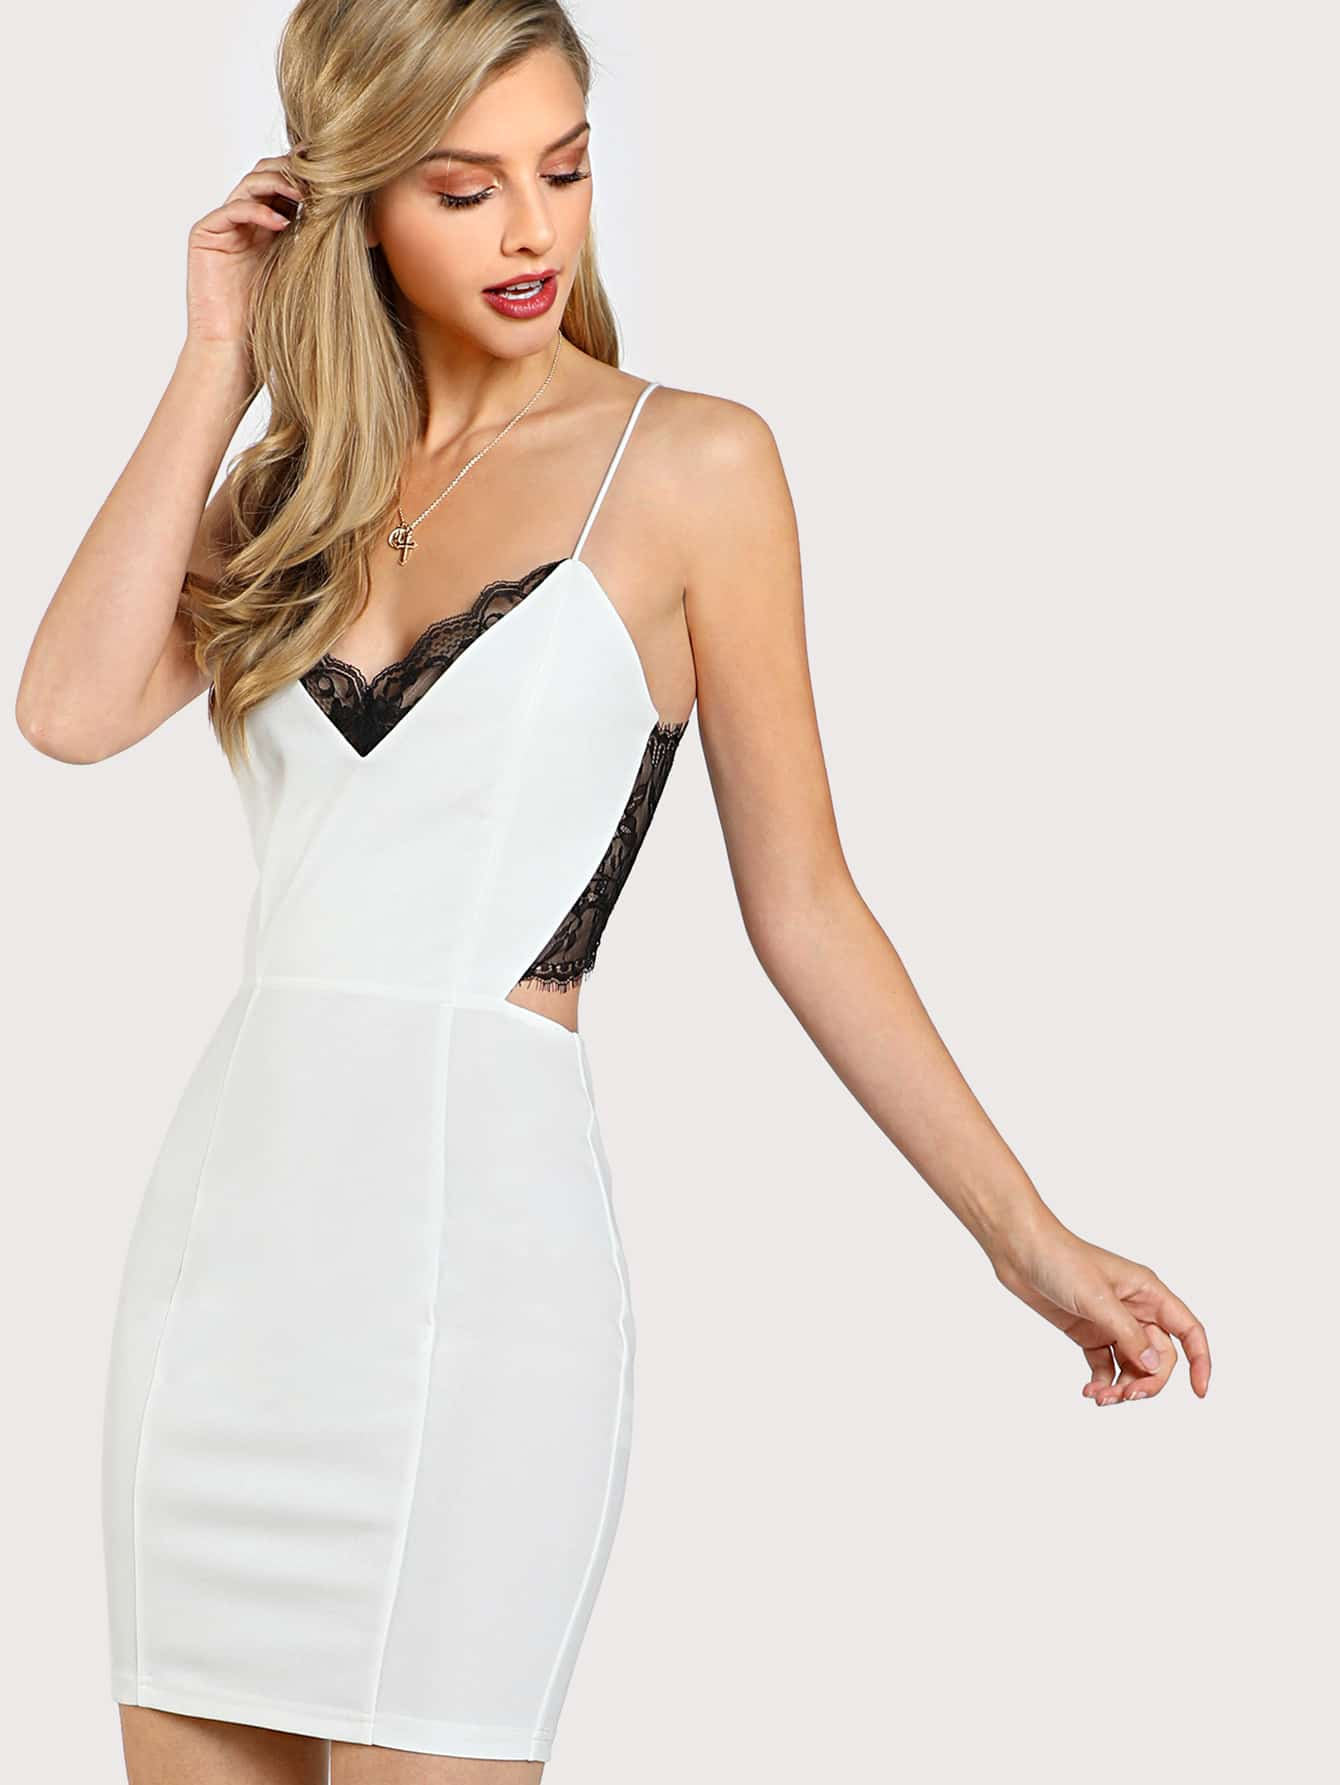 Lace Panel Cut Out Cami Dress dress171117707